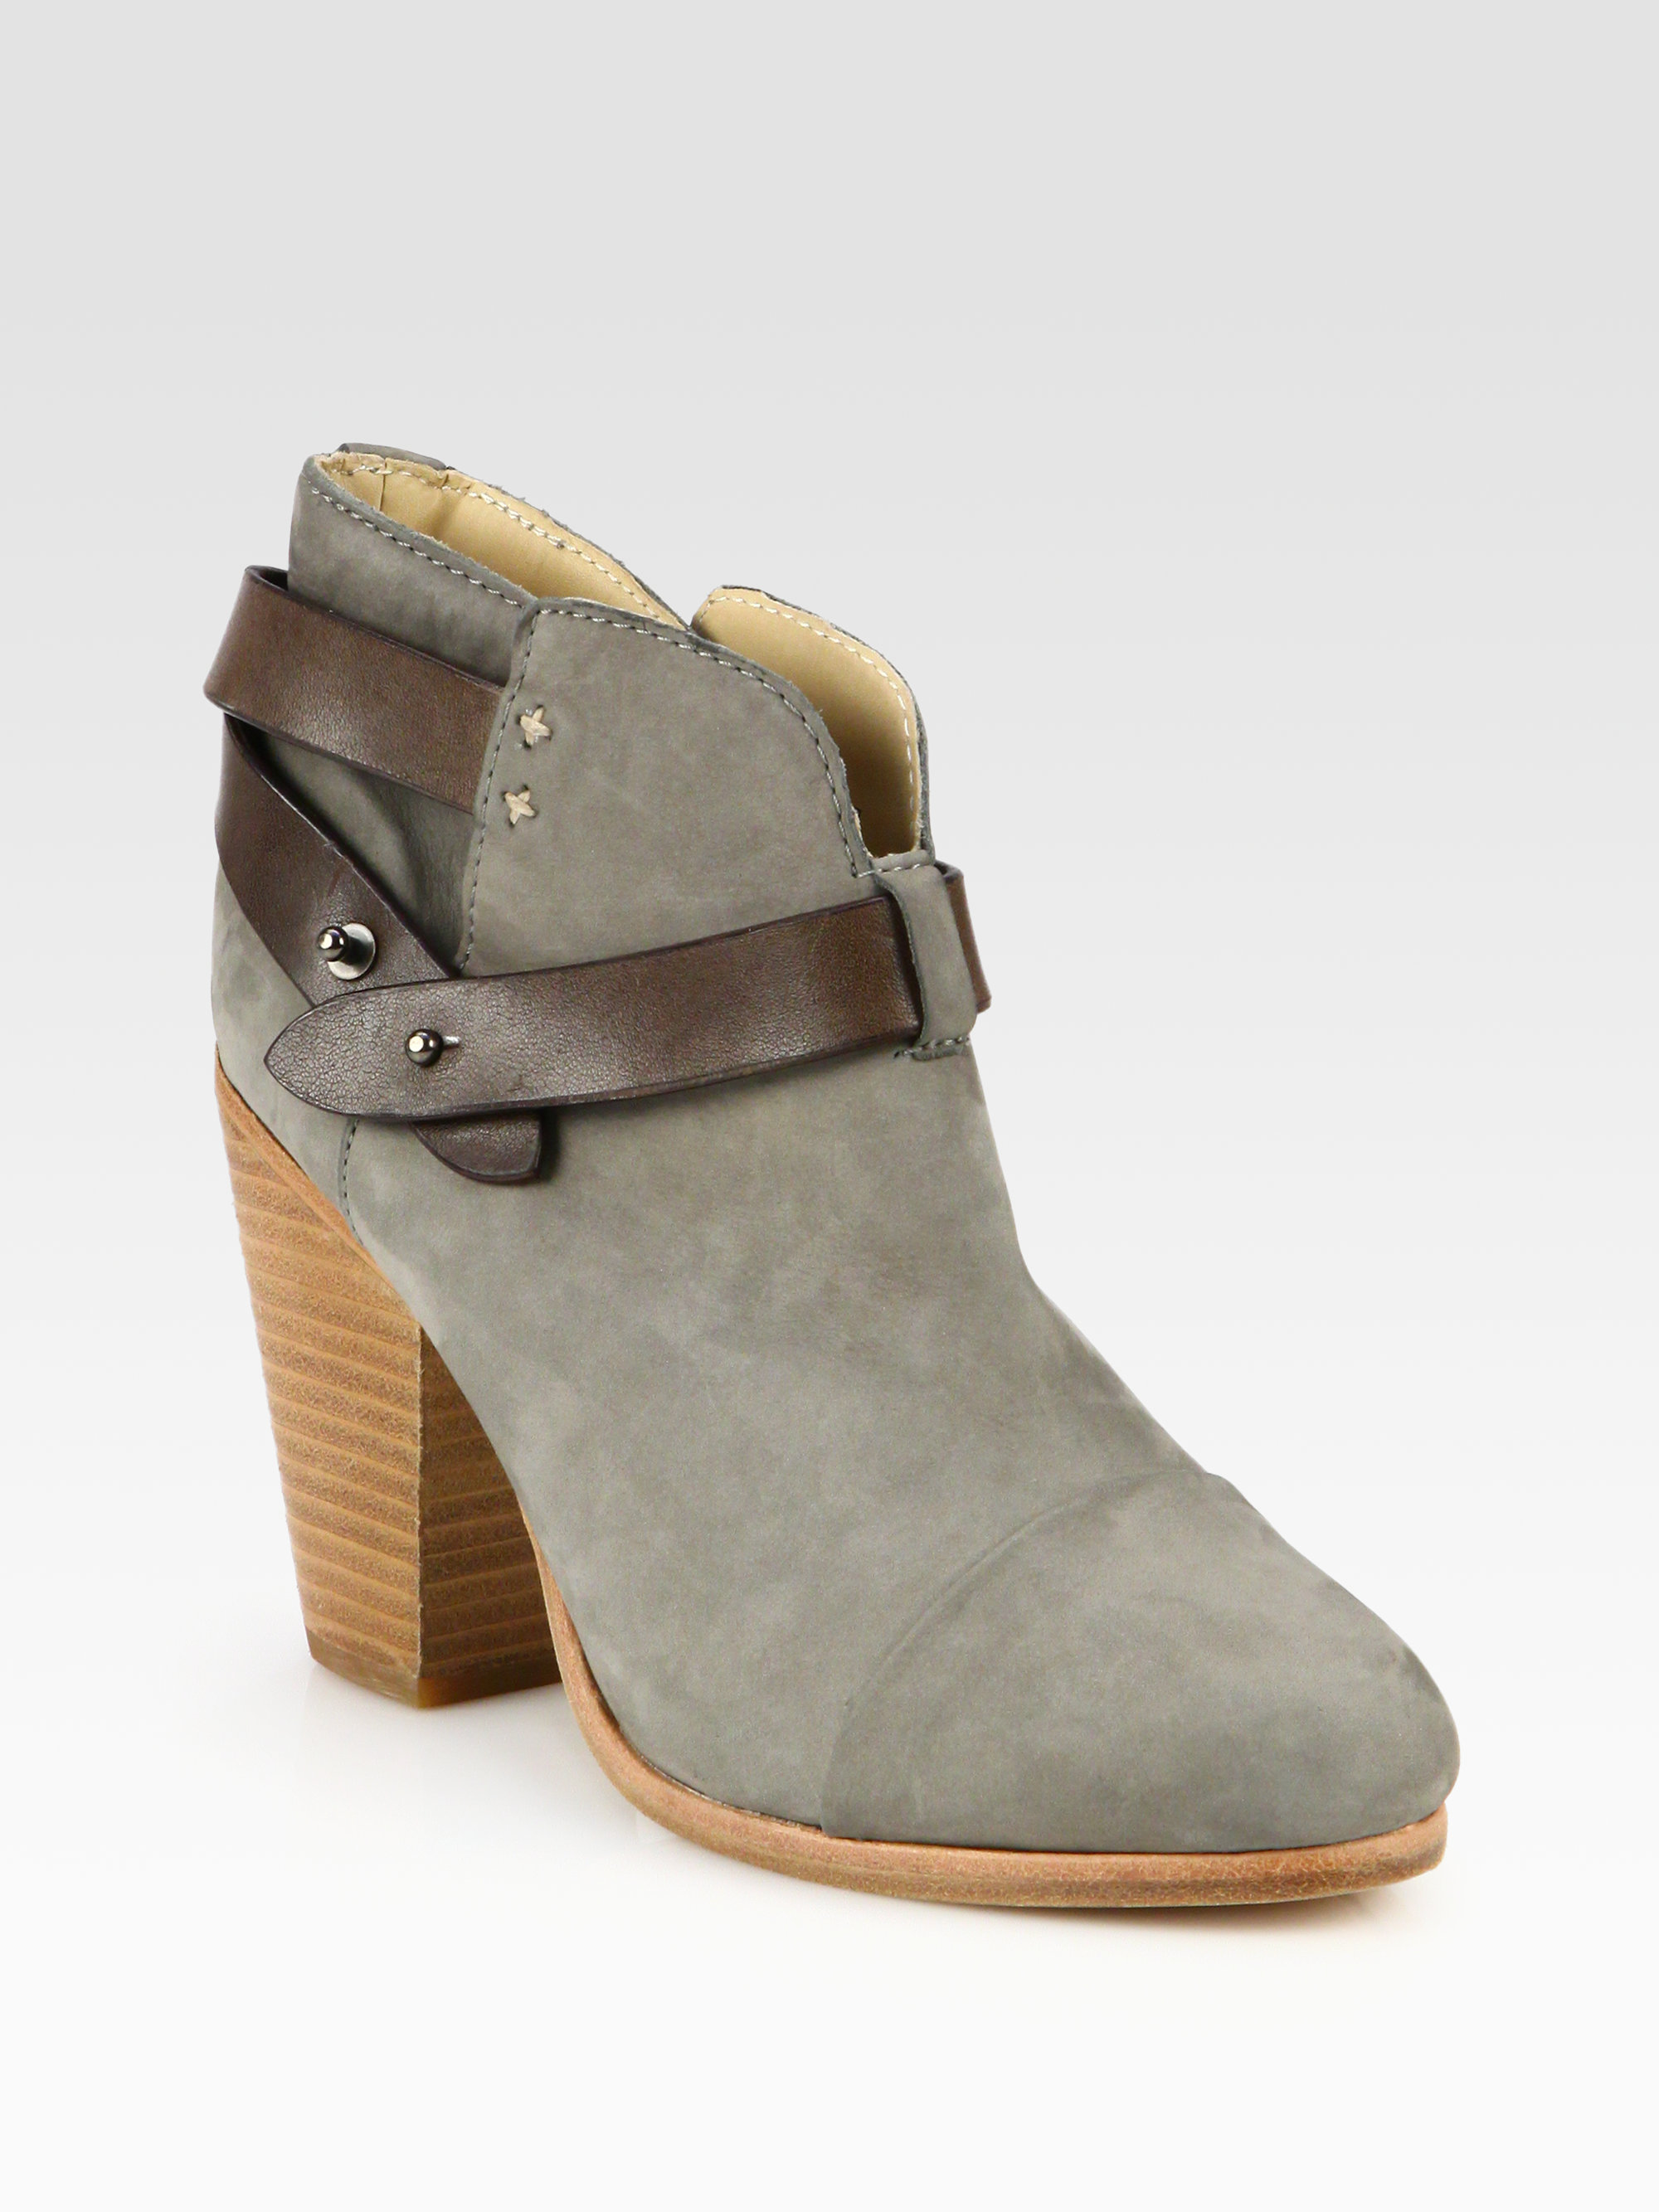 Rag & Bone Harrow Suede Ankle Boots w/ Tags